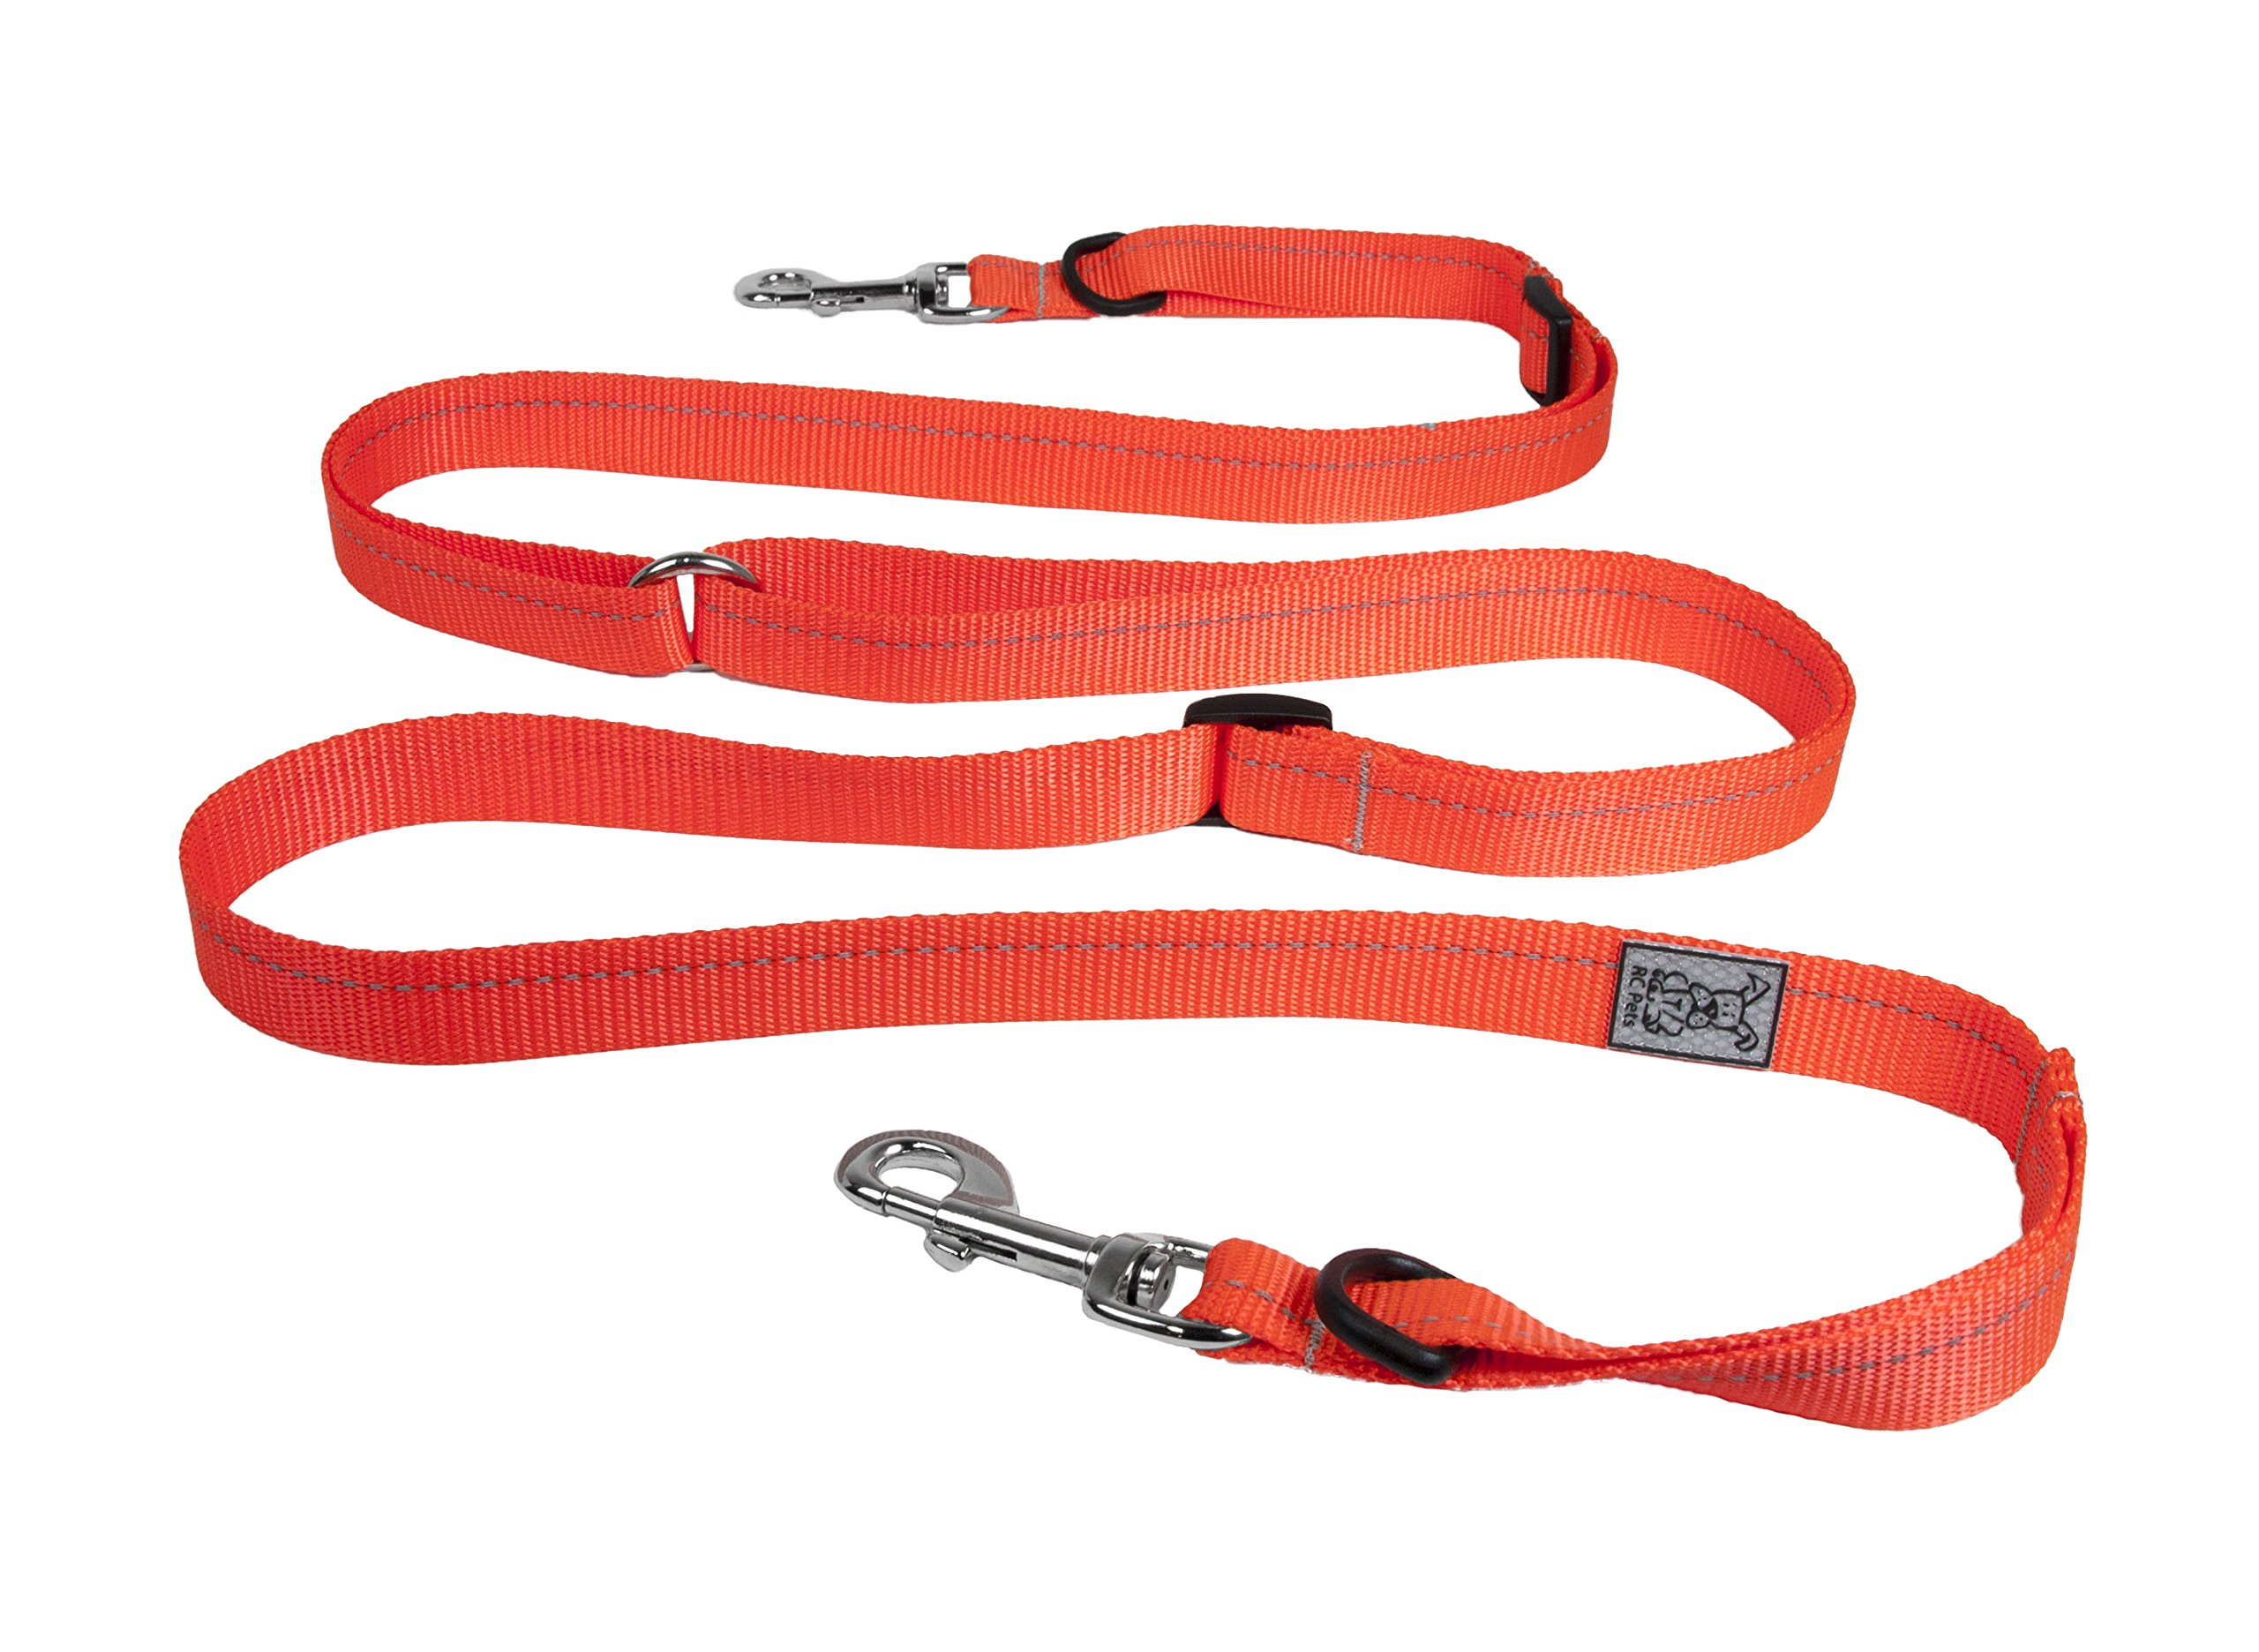 RC Pet Products 3/4 Primary Collection 3-in-1 Active Dog Leash, Orange